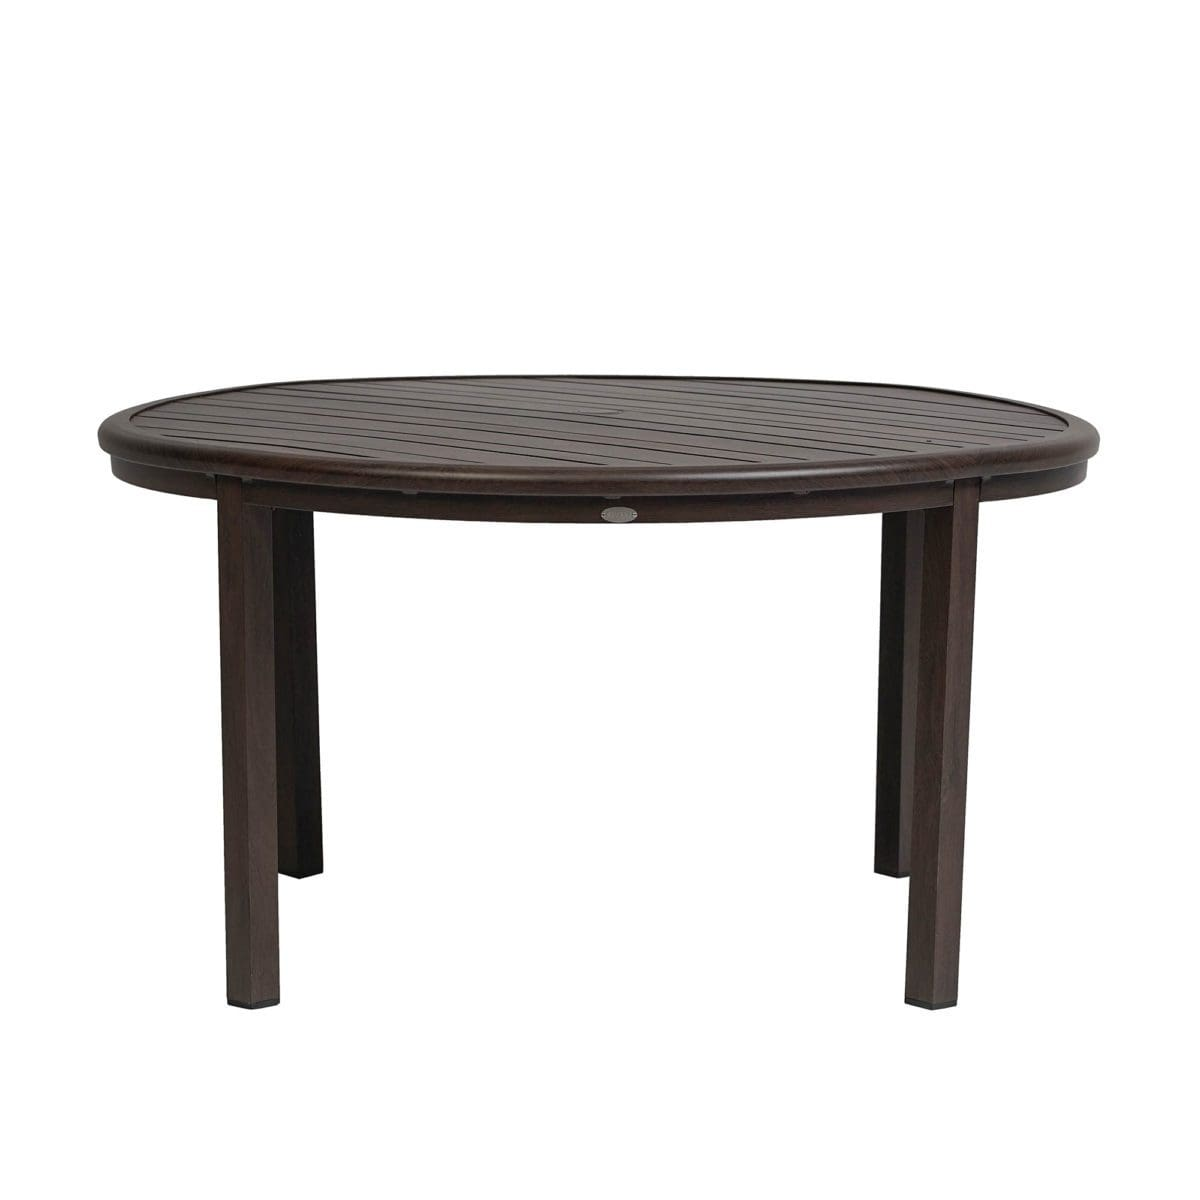 "Ratana Dining Table Canbria 54"" Rd Dining Table w/Umbrella Hole"